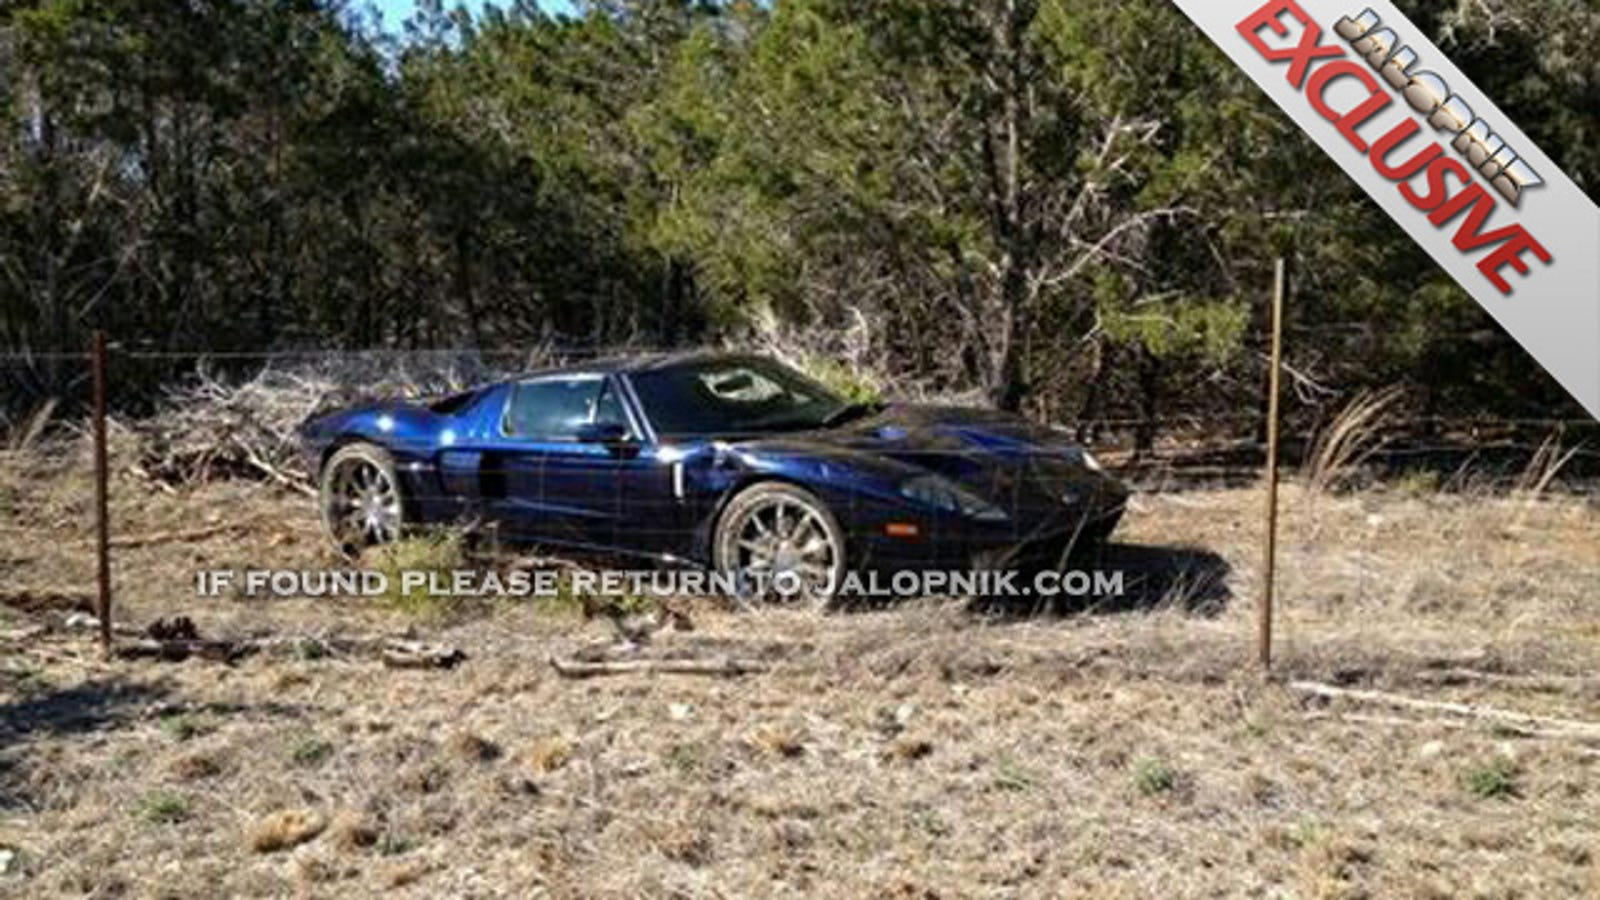 EXCLUSIVE: Jesse James' supercar crashes into neighbor's yard